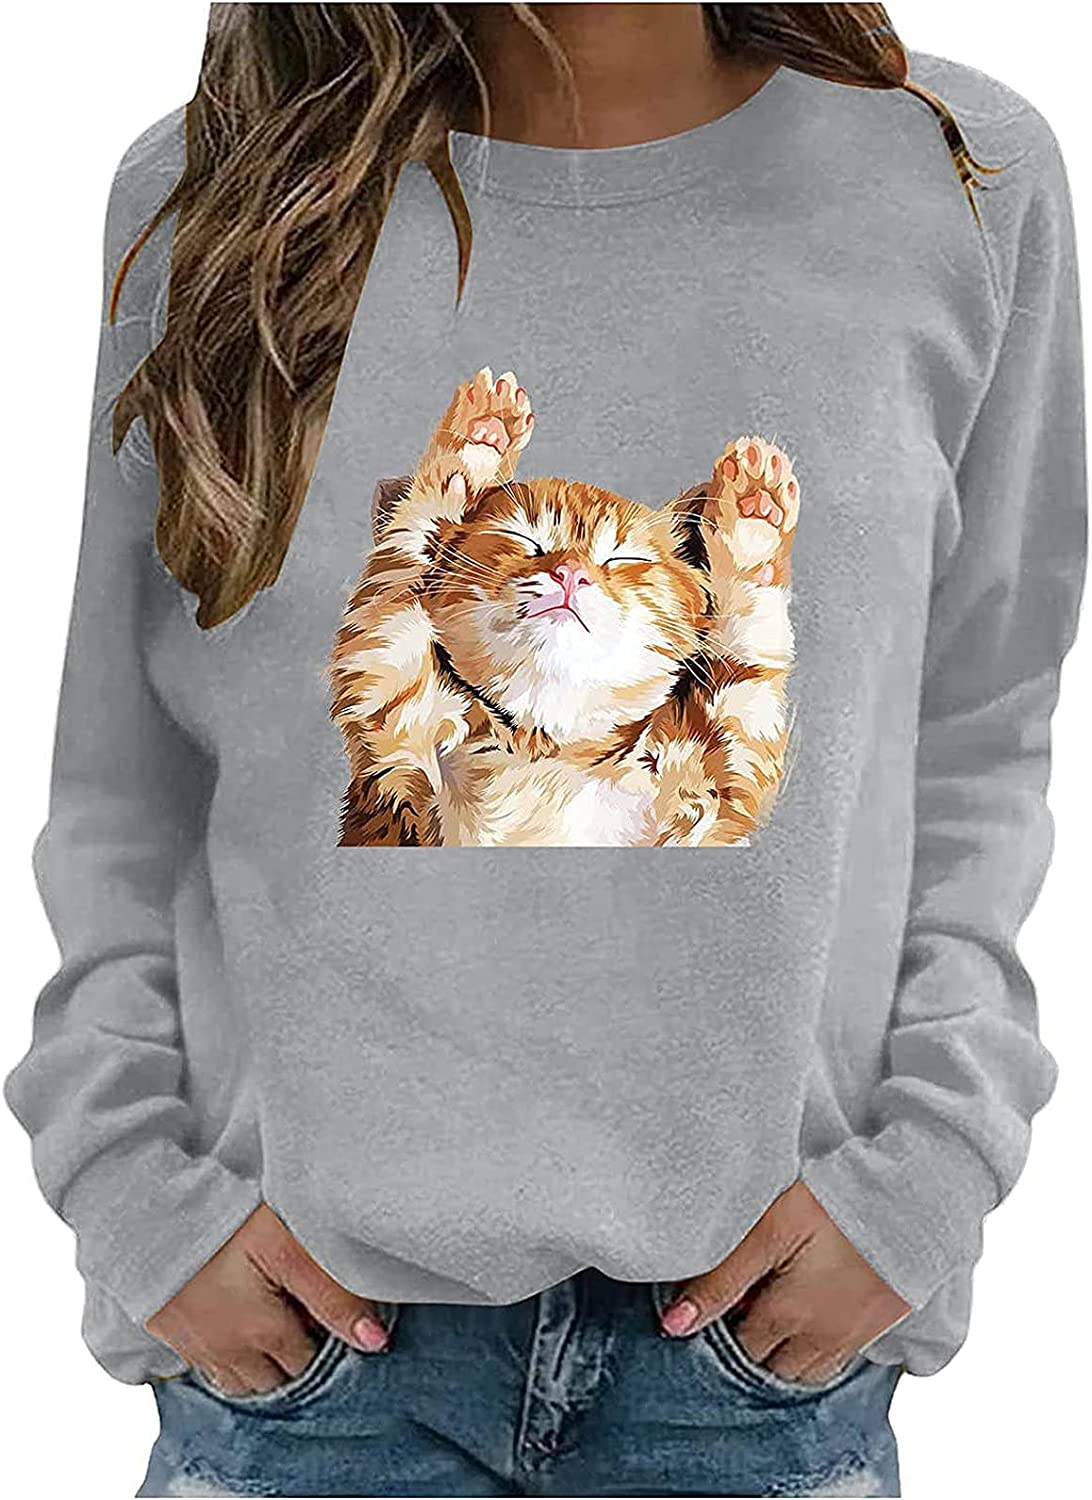 Cute Sleeping Cat Print Pullover For Women O Neck Long Sleeve Blouse Casual Fashion Loose Sweatshirt Tops